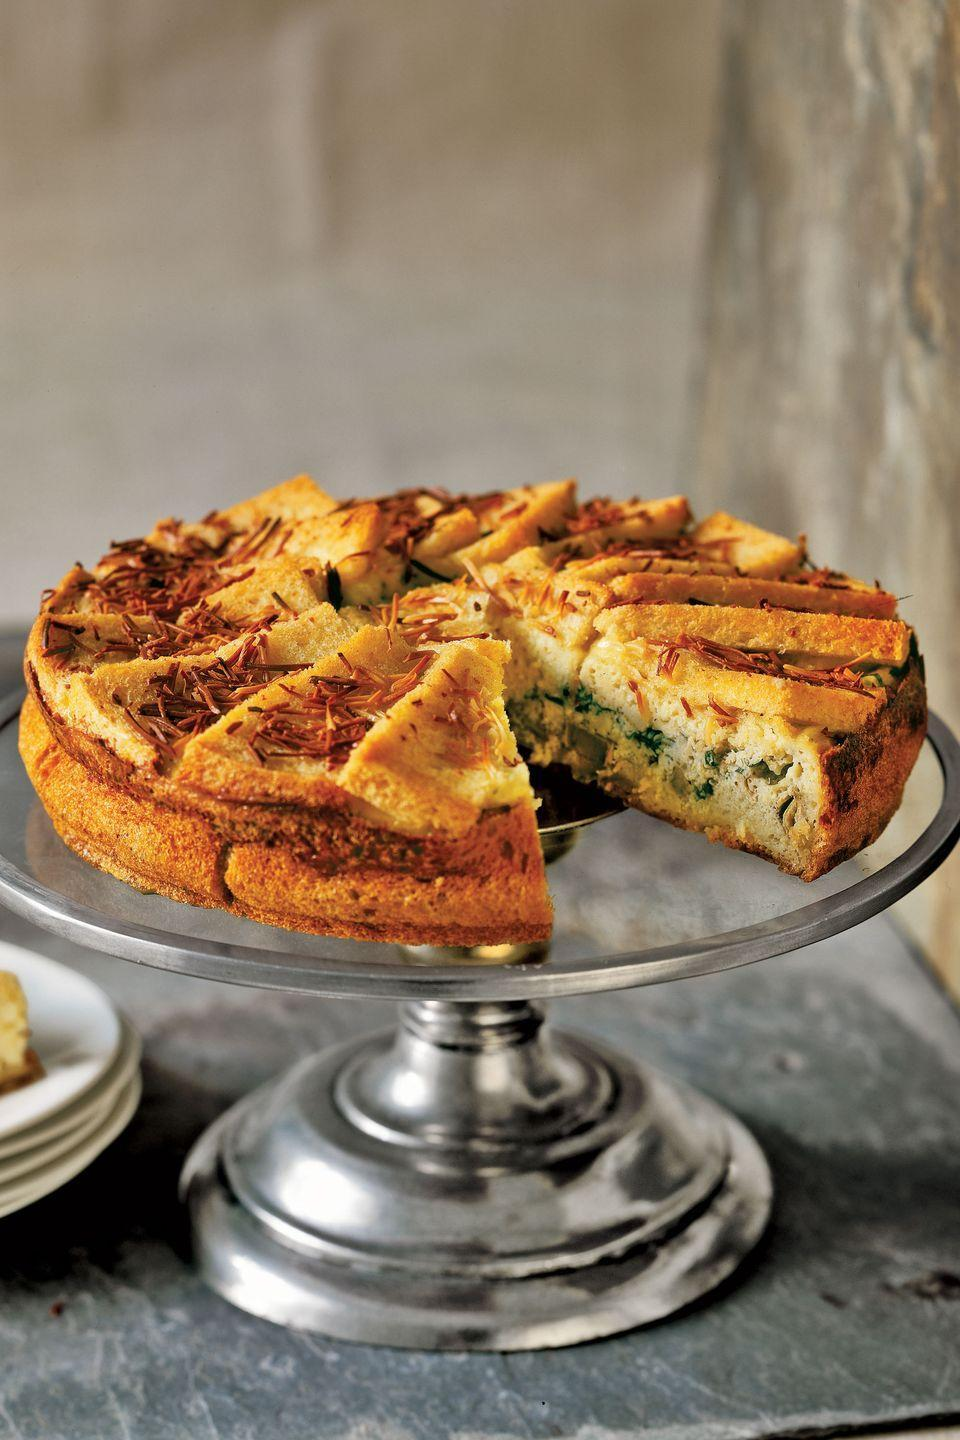 "Elegant eggs, served in this savory charlotte, begin with Fontina and ricotta cheeses, fresh basil and parsley, and thin slices of bread. The result is a melt-in-your-mouth meal, suitable for brunch or dinner. <a href=""https://www.countryliving.com/food-drinks/recipes/a779/fontina-herb-charlotte/"" rel=""nofollow noopener"" target=""_blank"" data-ylk=""slk:Get the recipe."" class=""link rapid-noclick-resp""><strong>Get the recipe.</strong></a>"